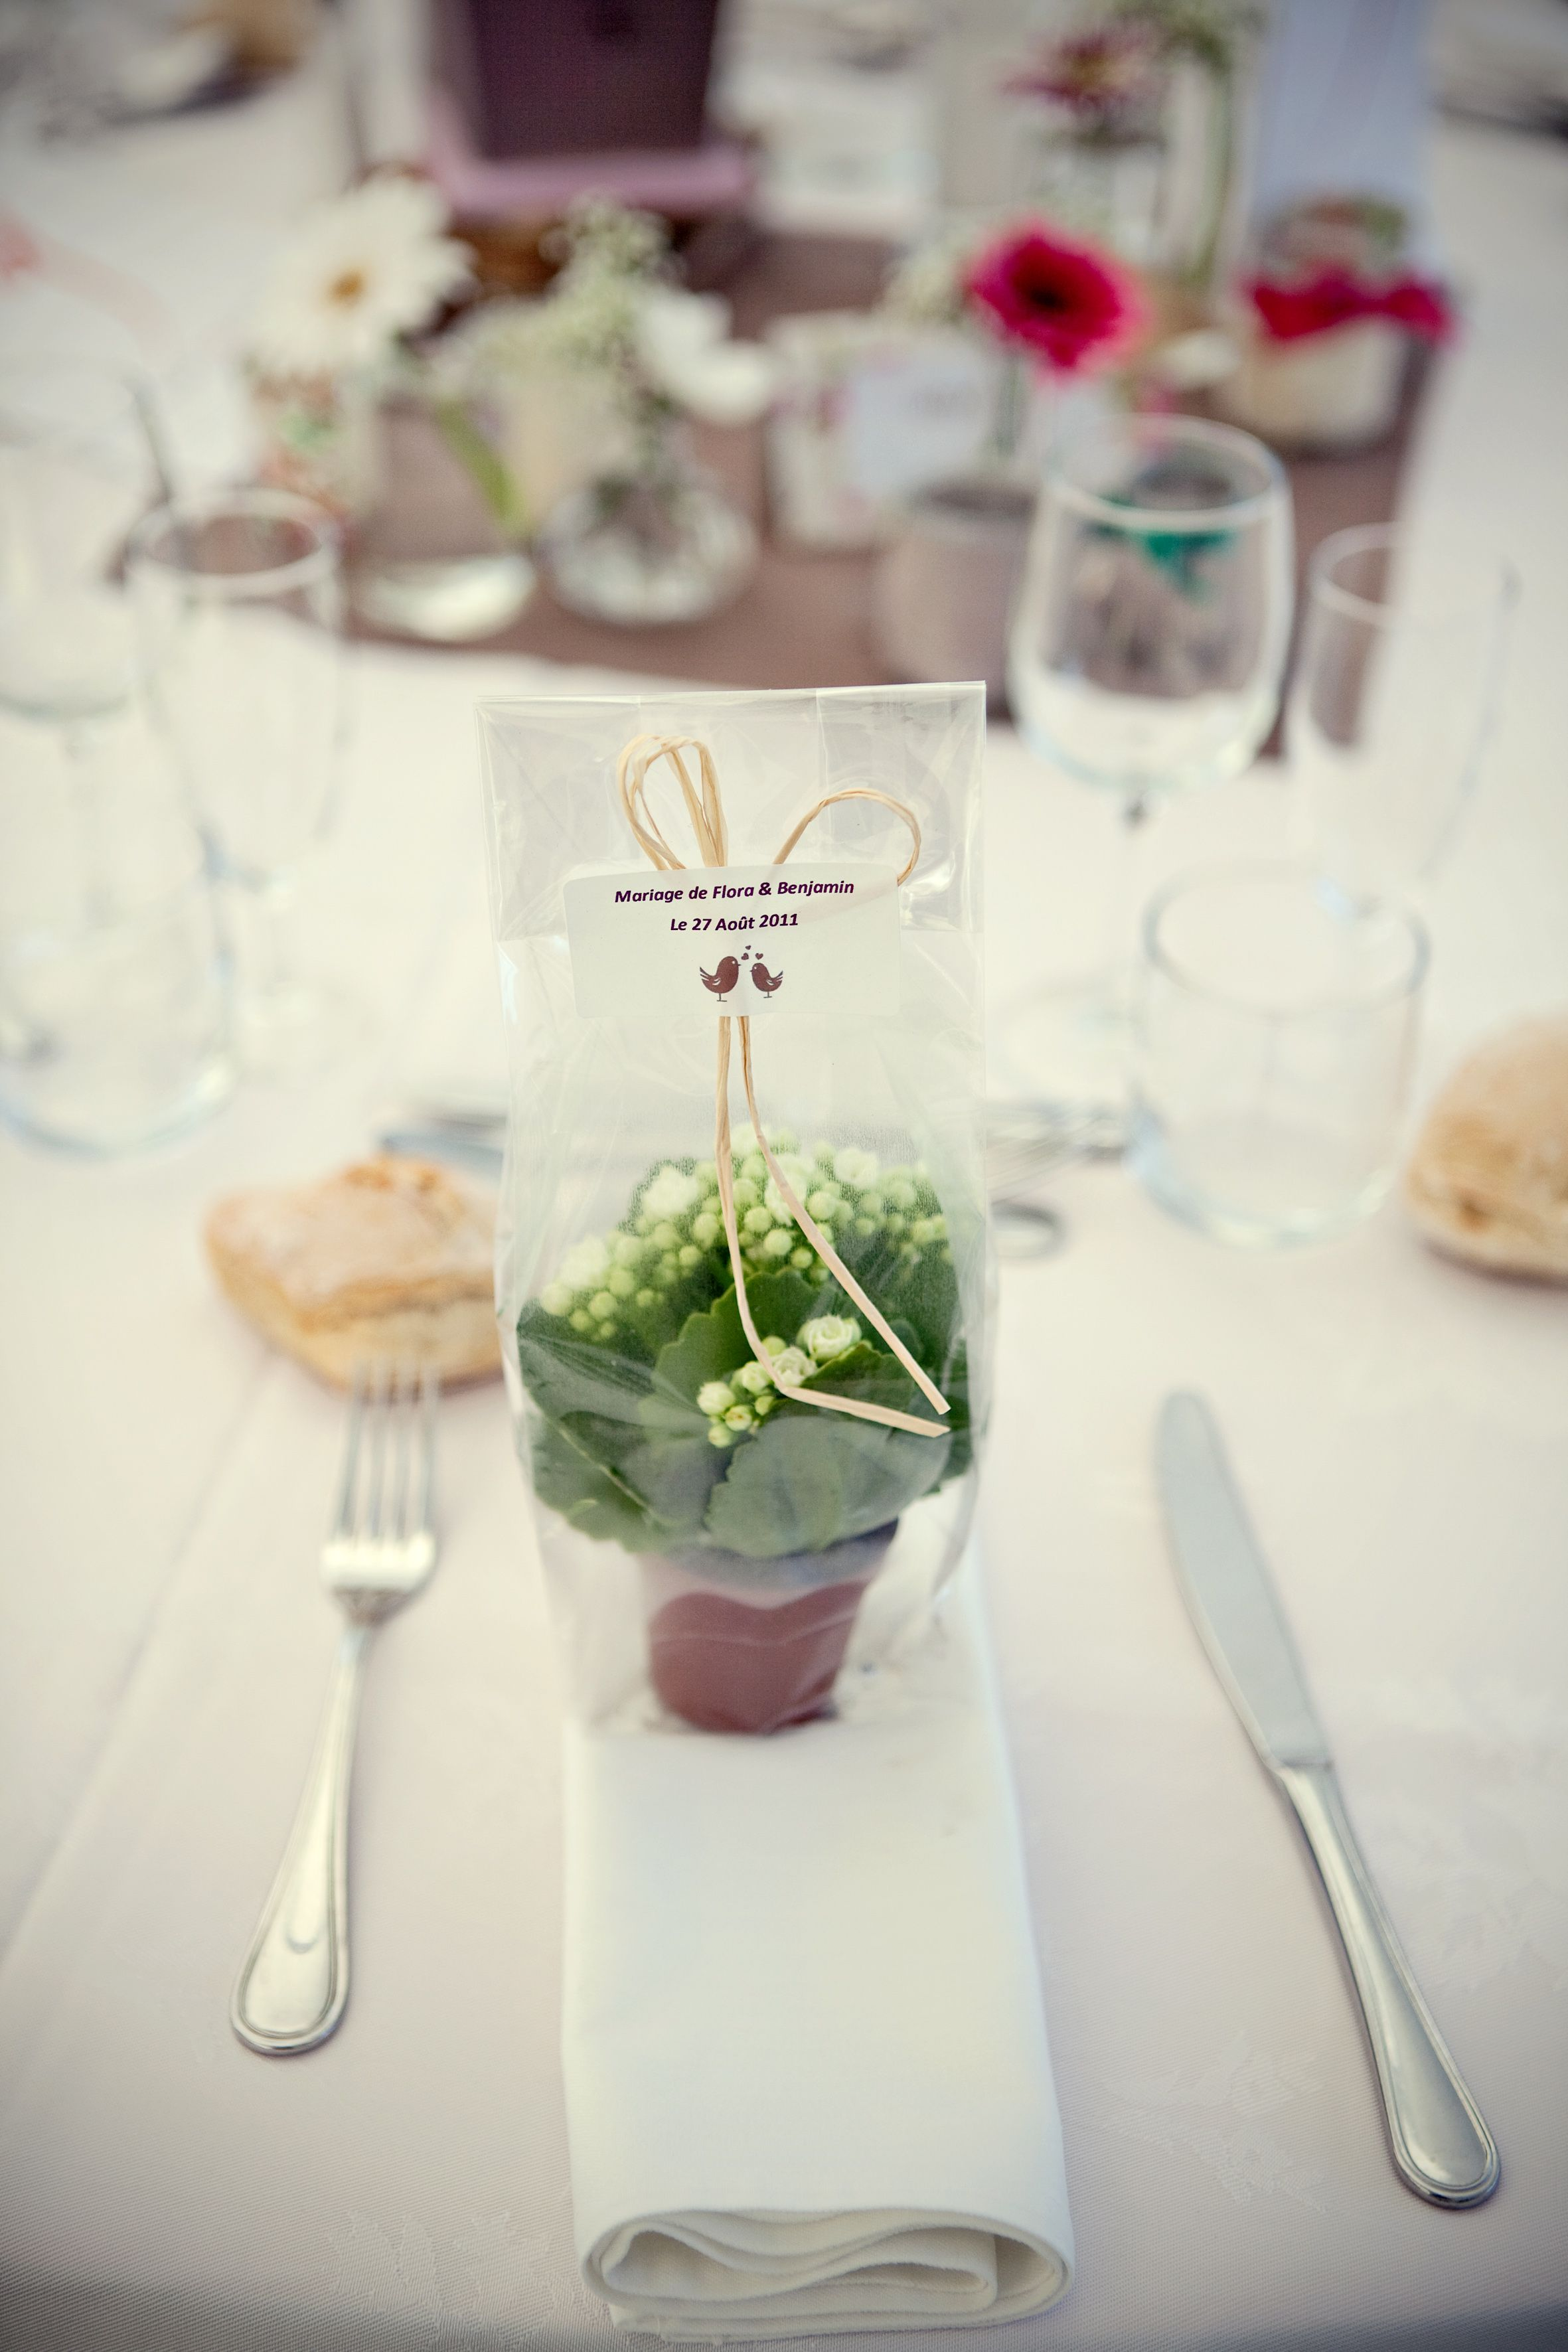 Marianne Taylor Photography | Tablescapes | Pinterest | Favors ...